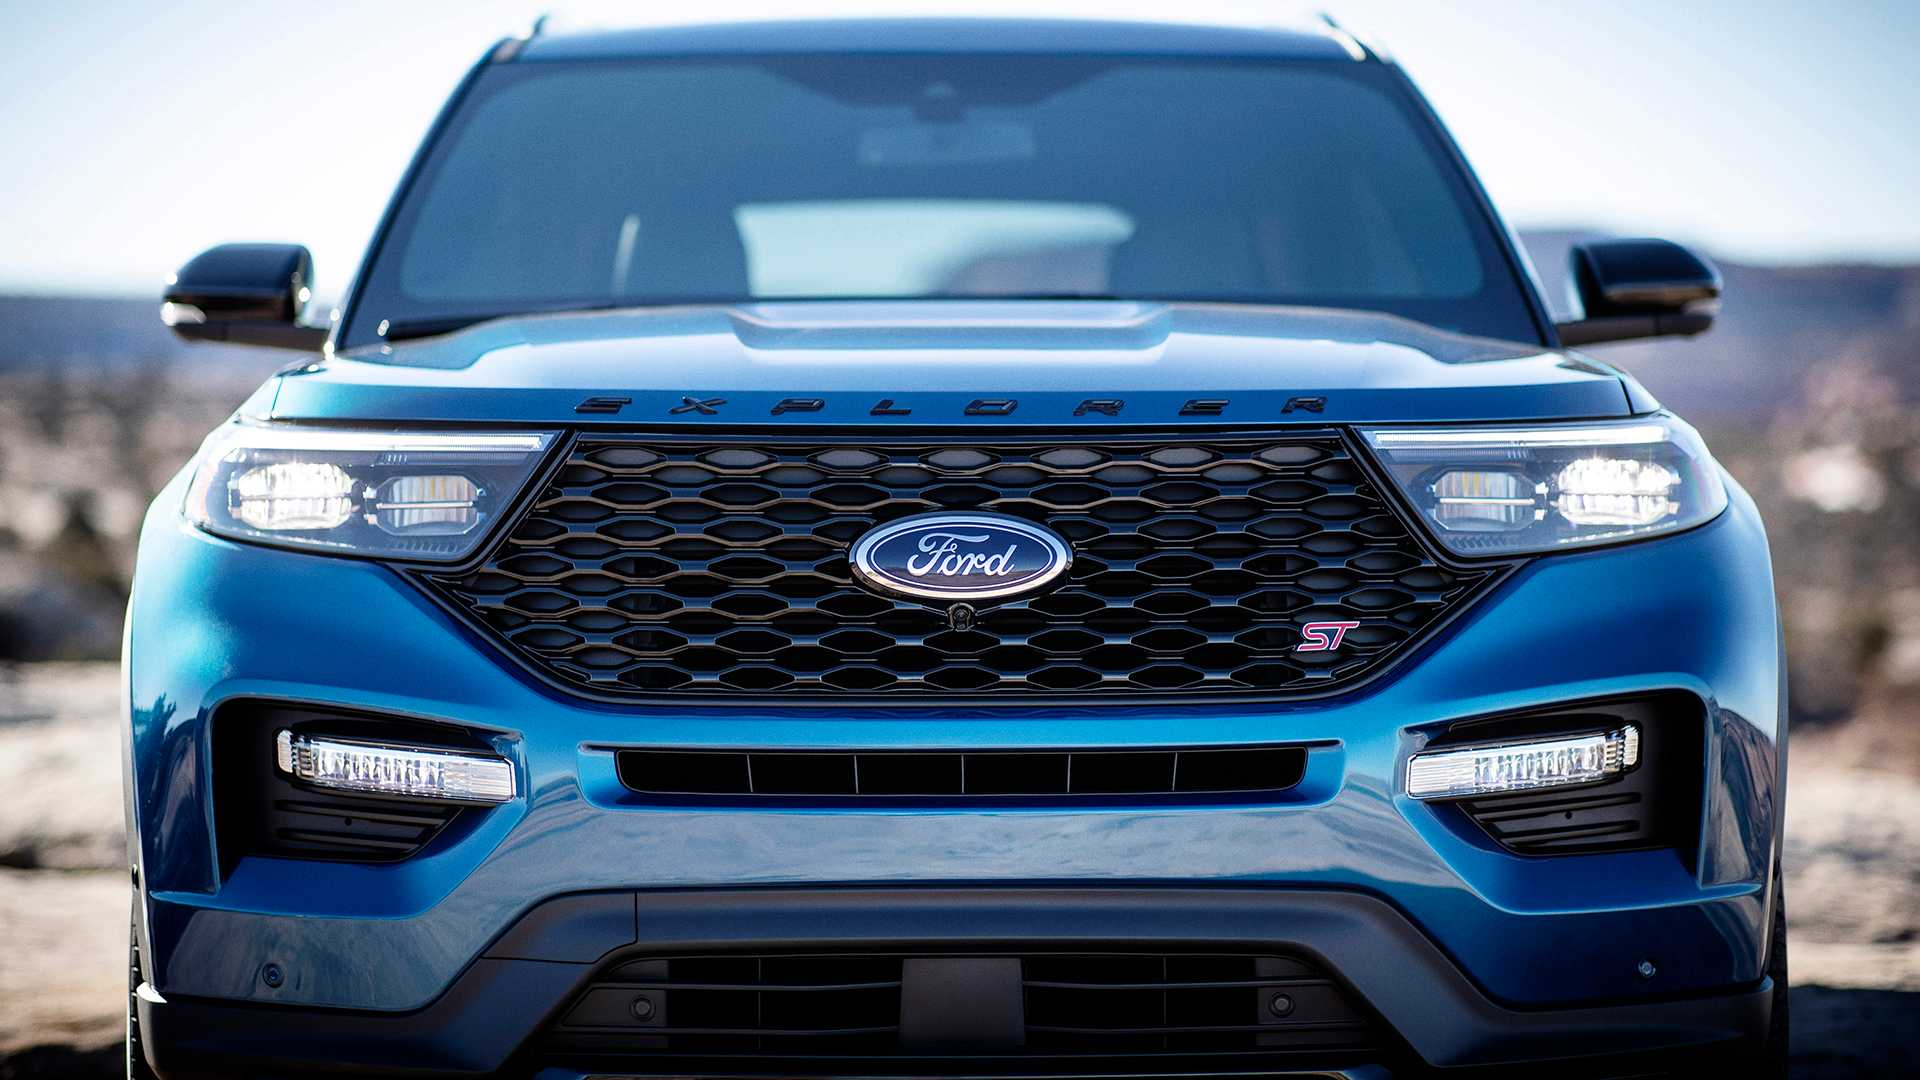 82 All New 2020 Ford Explorer Xlt Price New Review